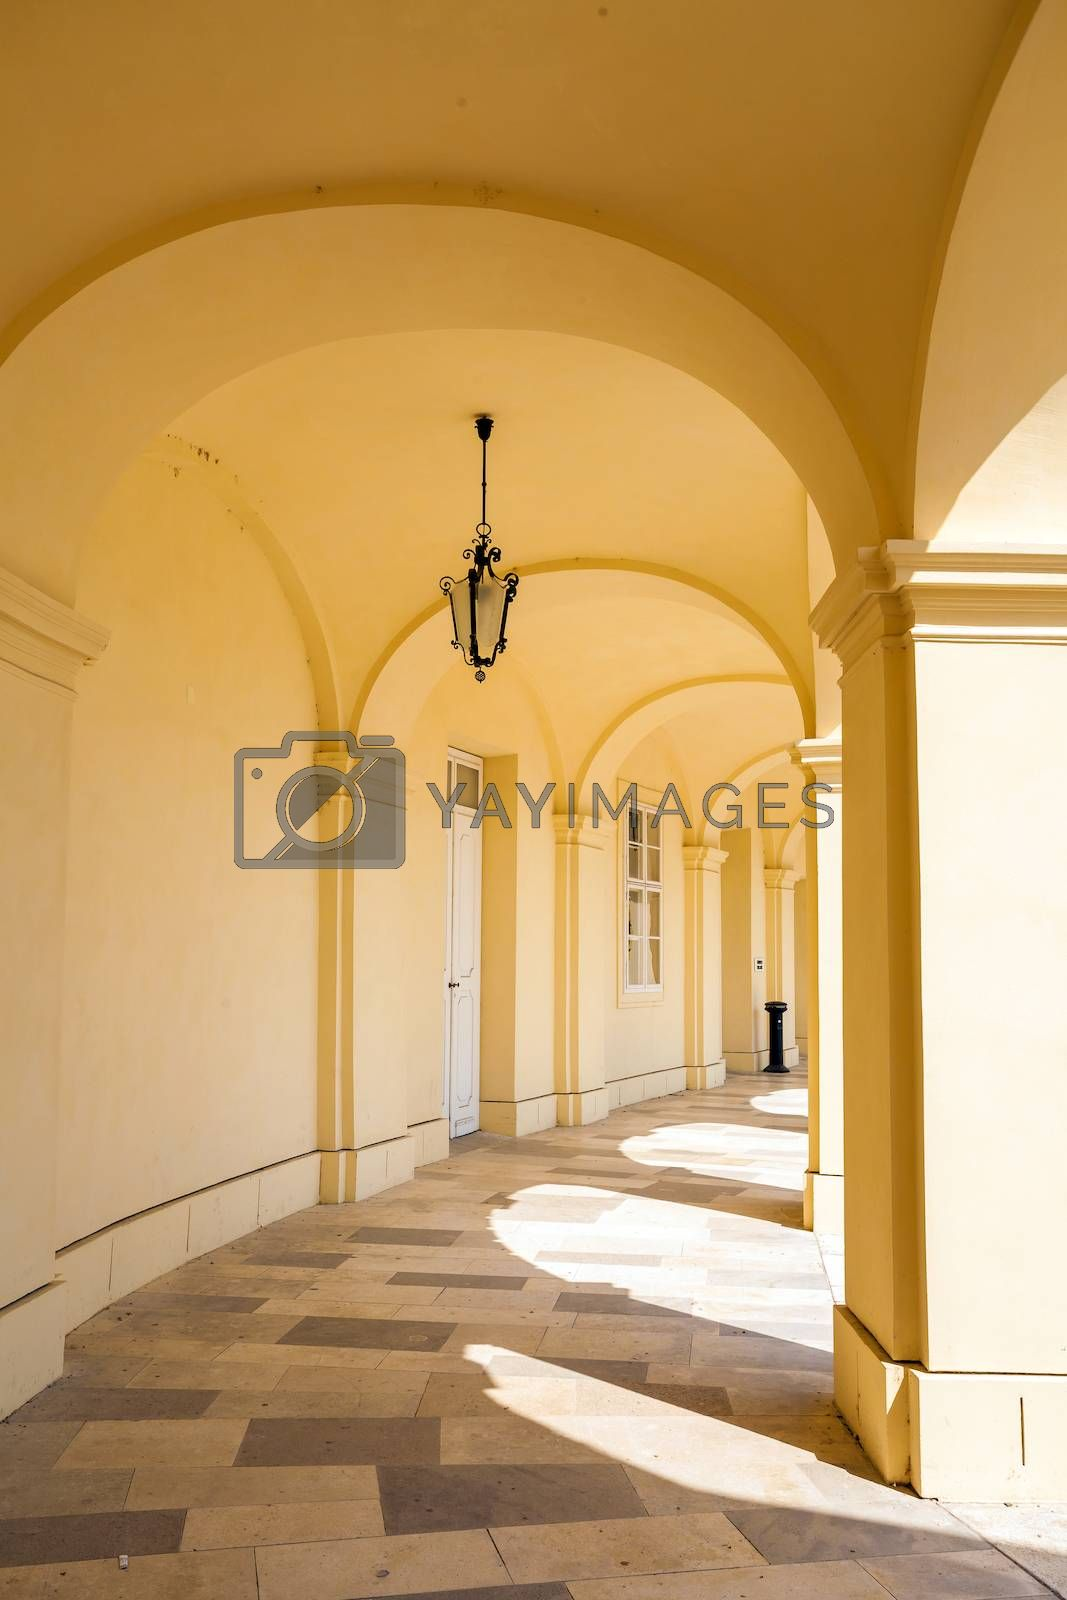 Arcade gallery of Schoenbrunn palace in Vienna by PixAchi